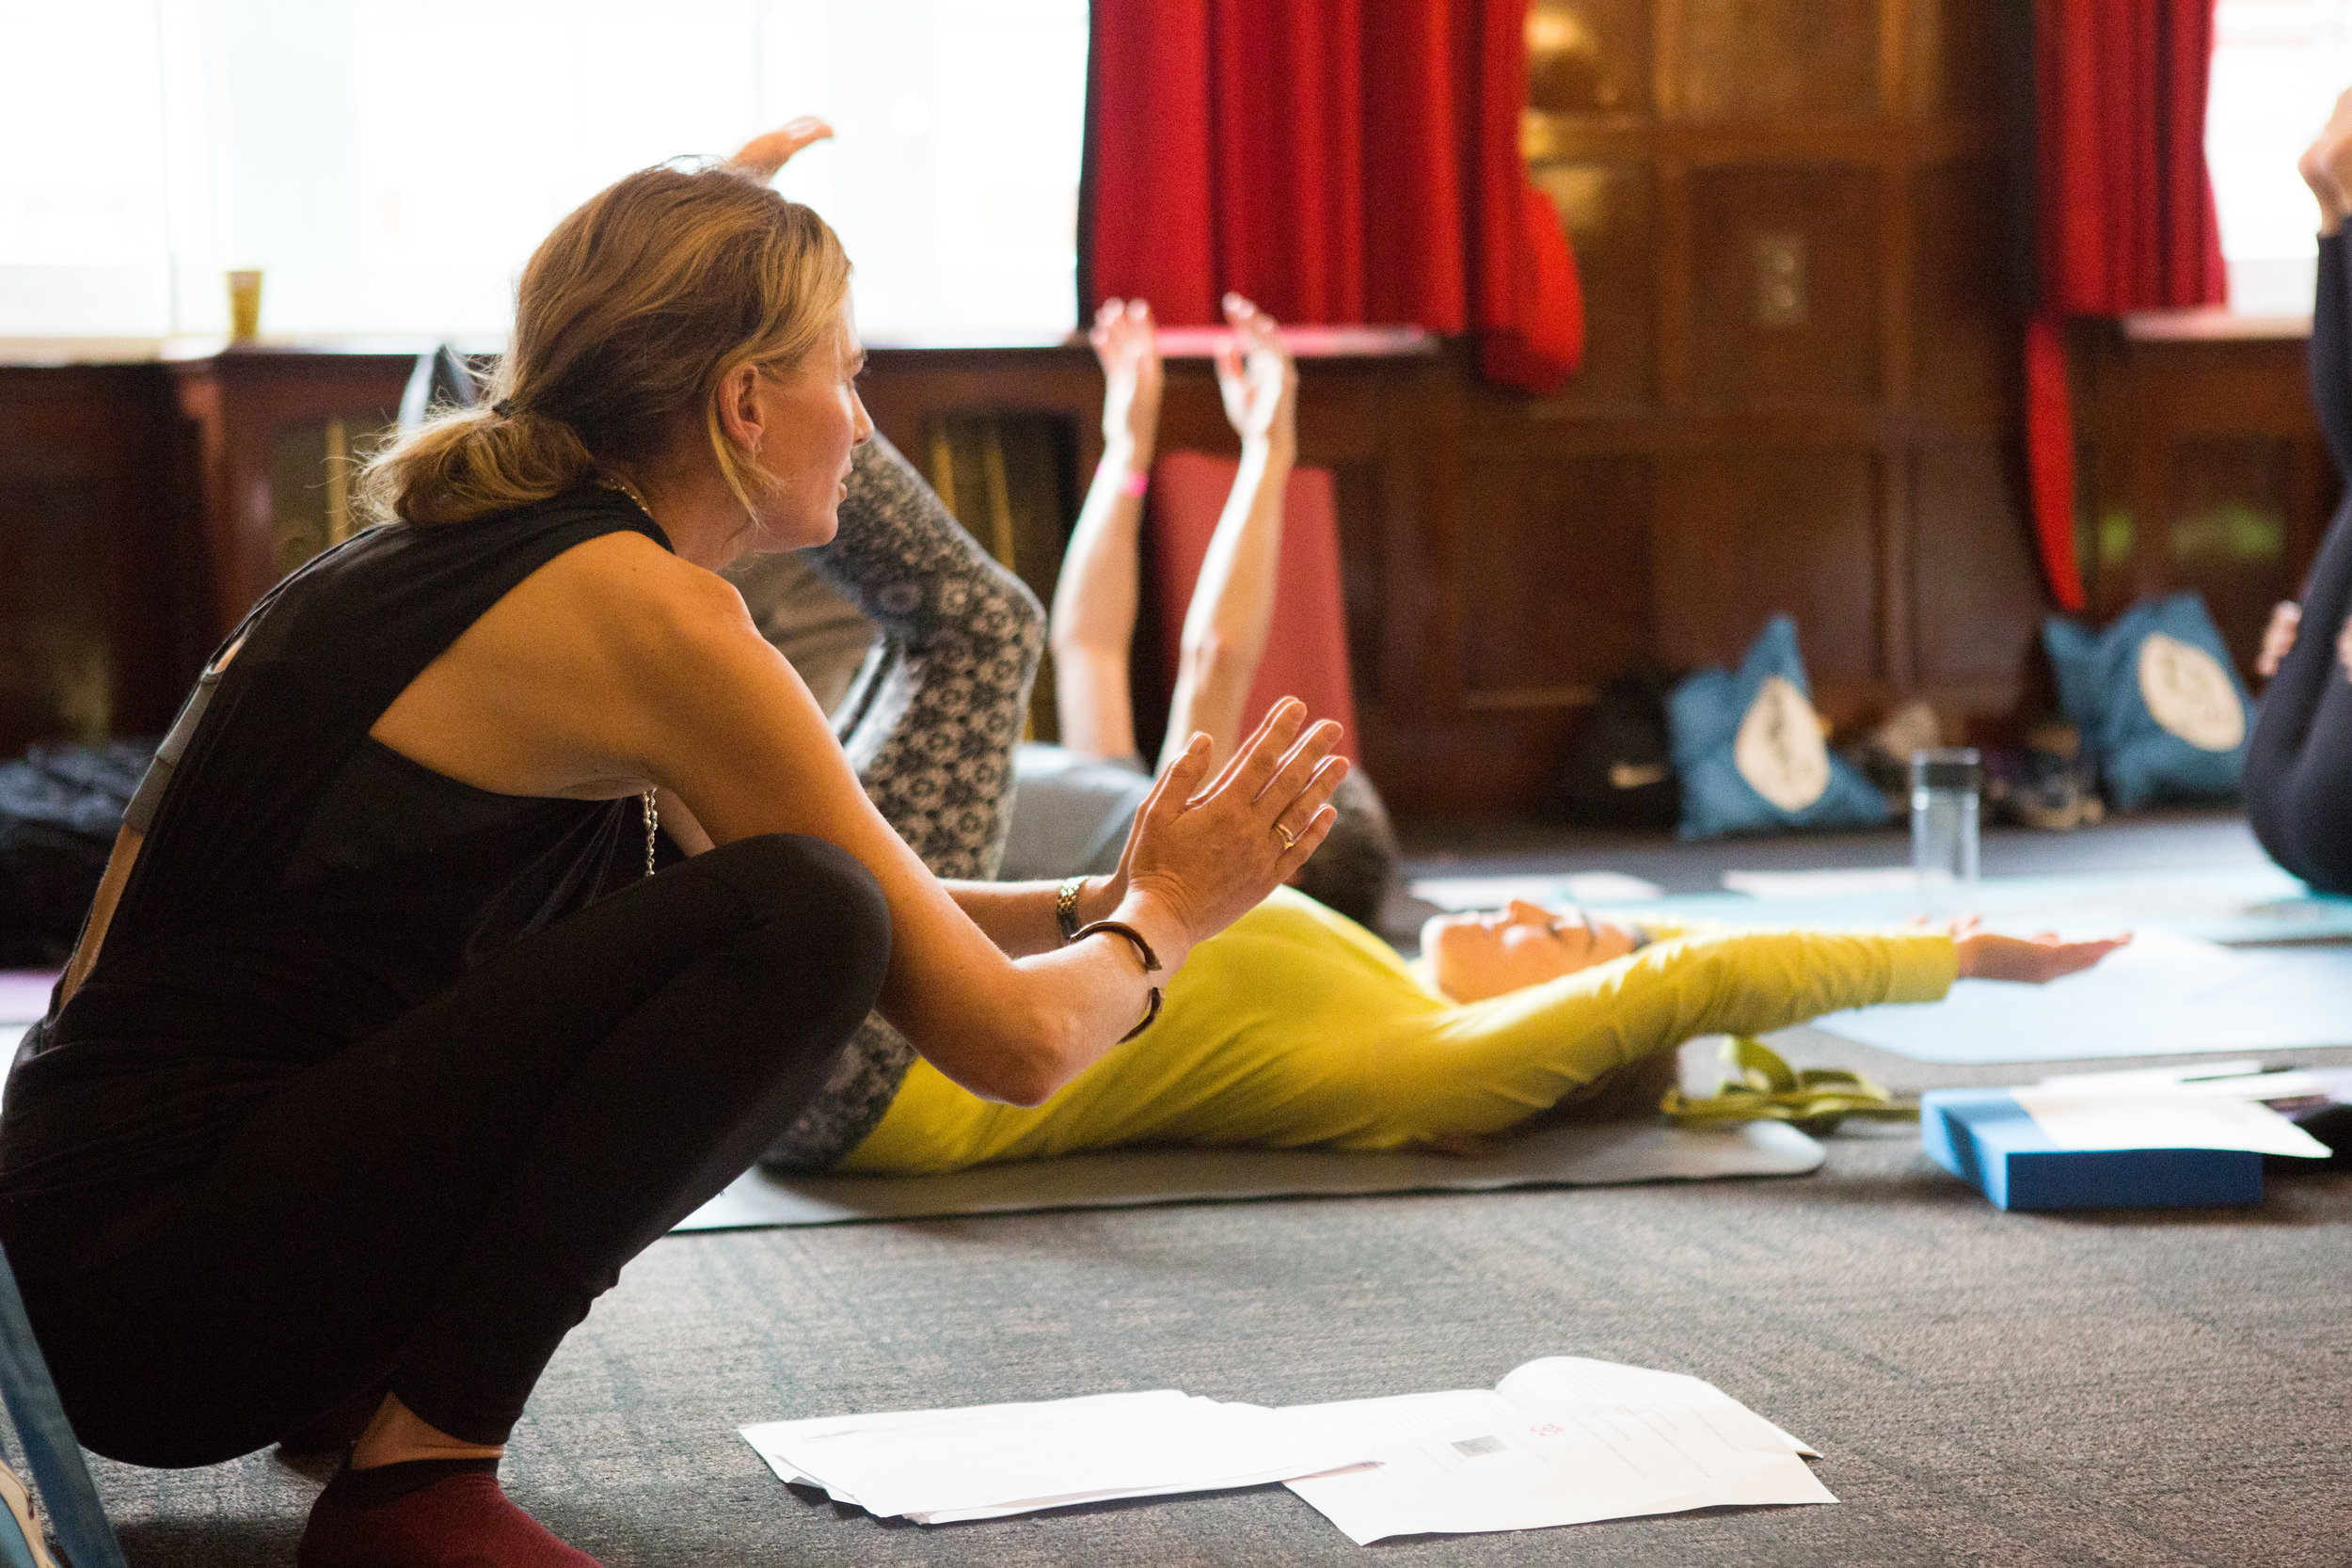 Advanced Yoga therapy trainings - A three year advanced yoga therapy training course continuing in the development of practical therapy skills, pathology models of health and disease, specific application of yoga's methods and tools, and yoga therapy practice management.